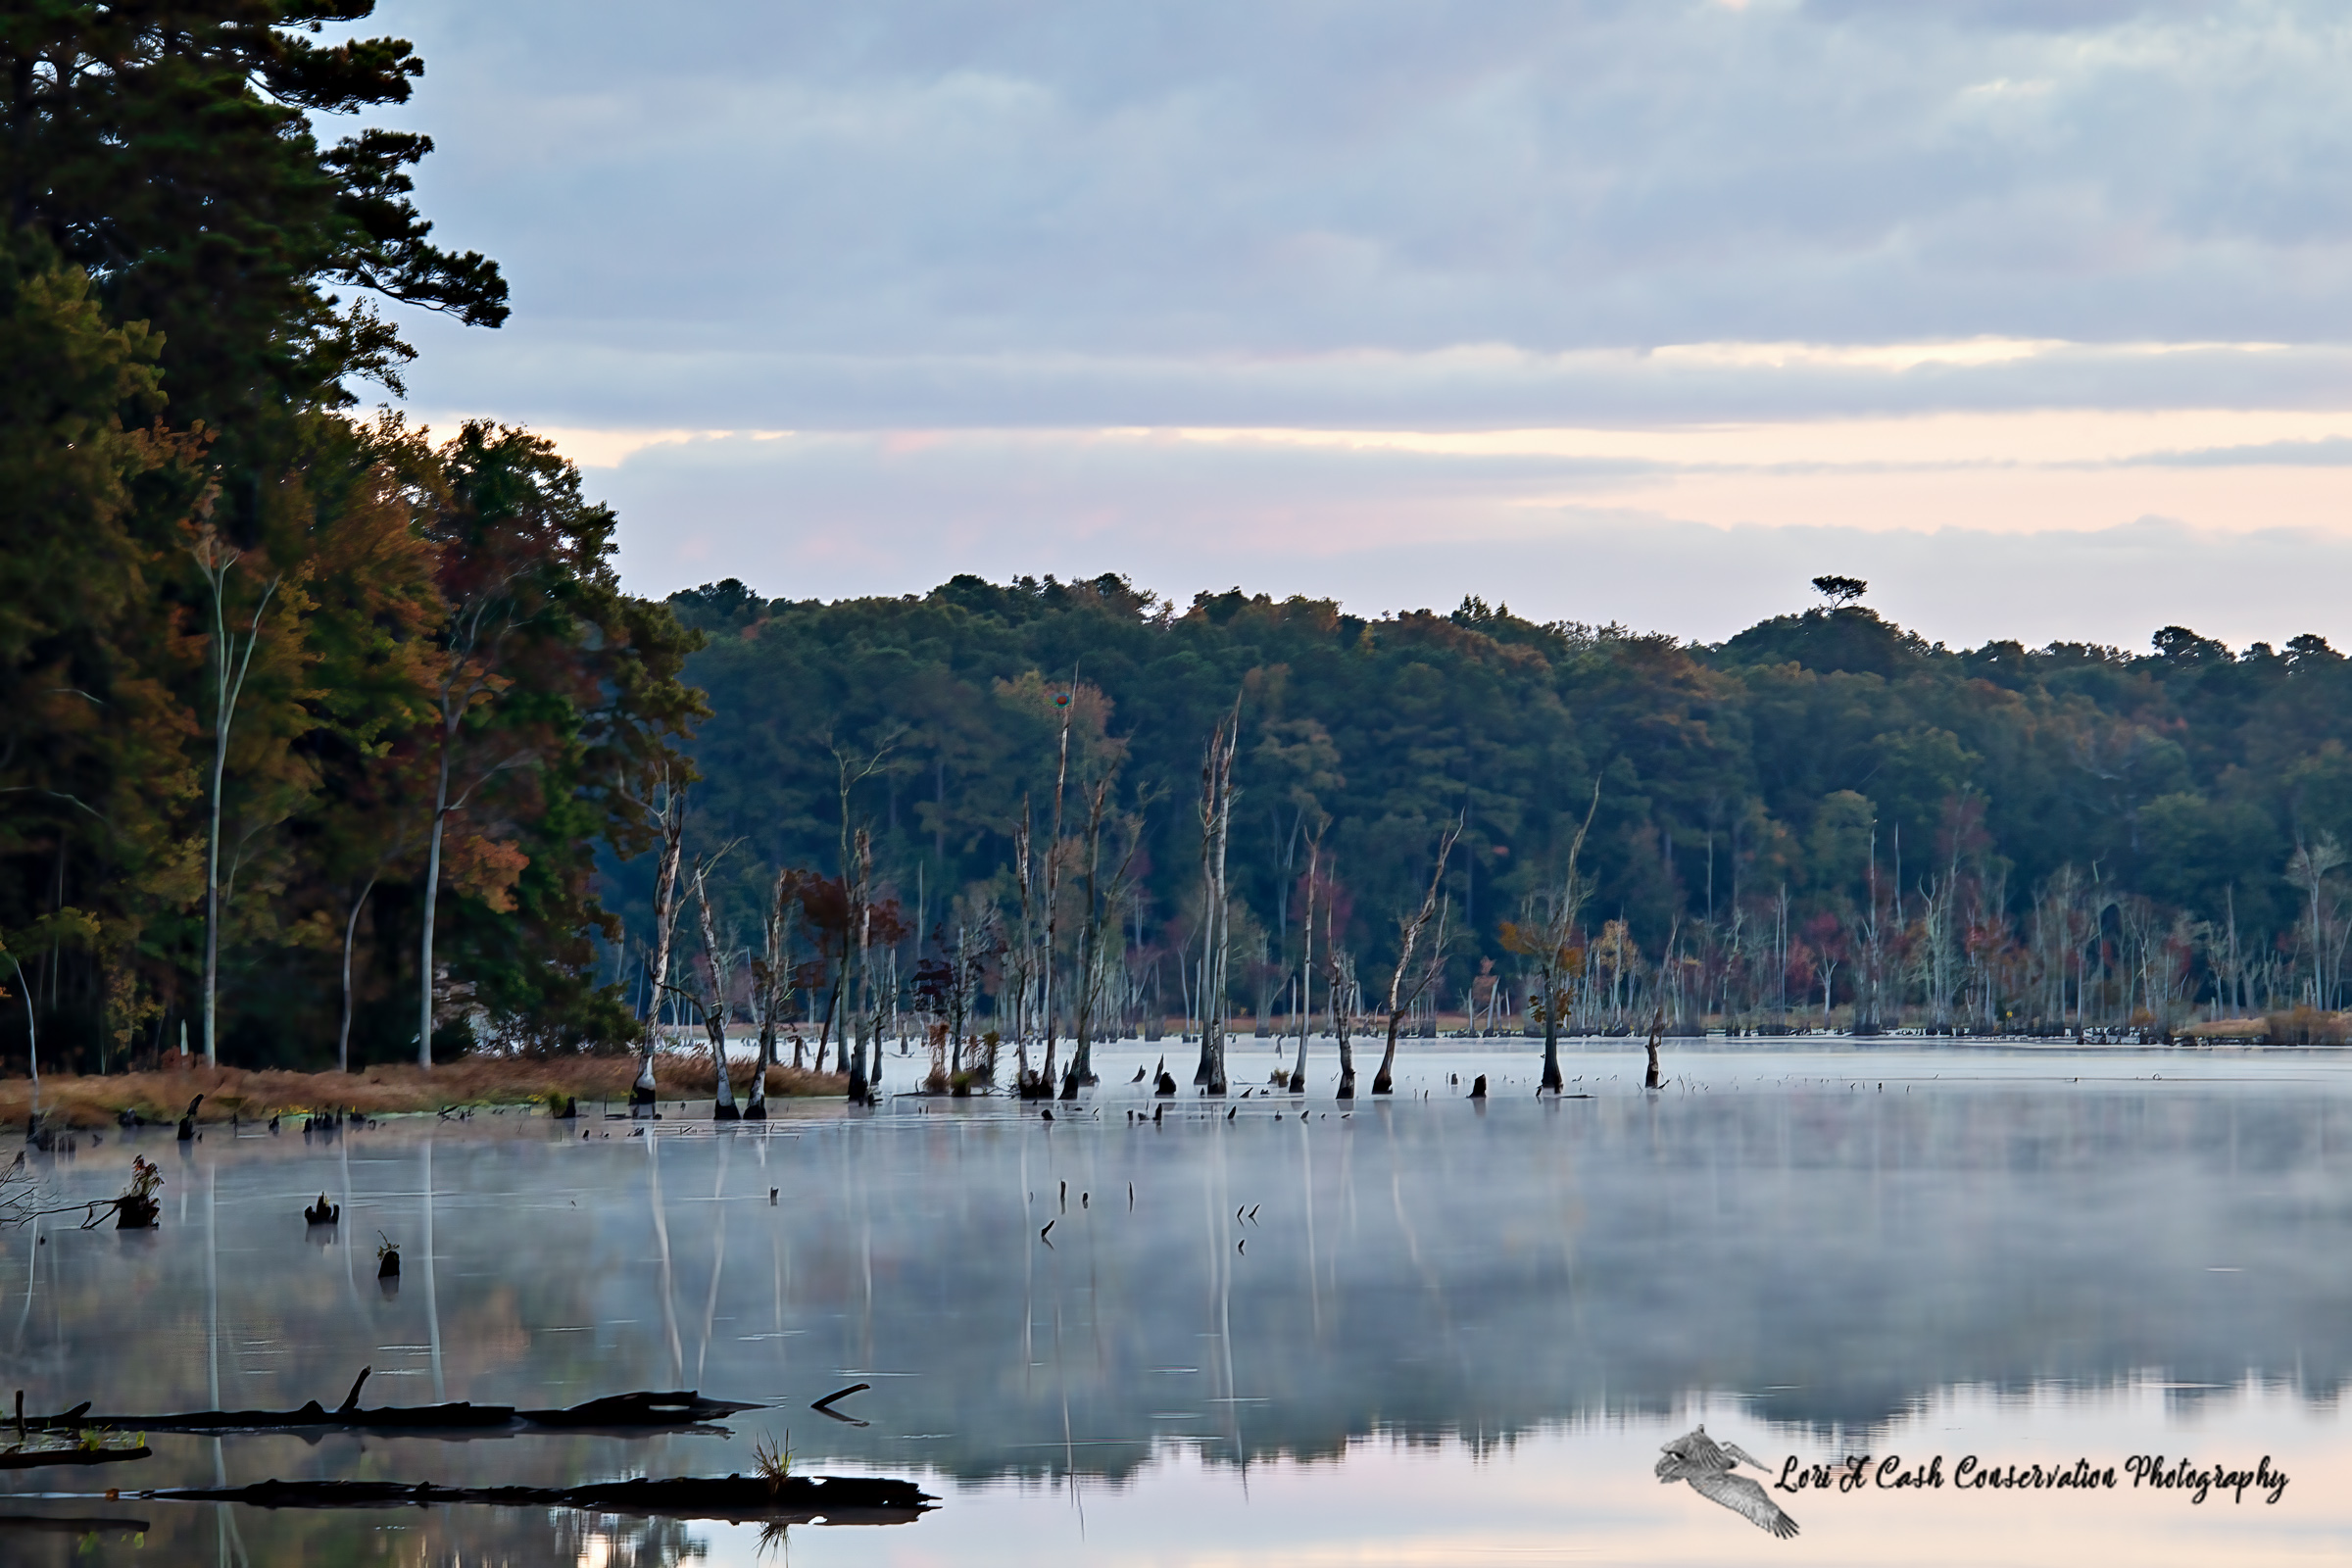 Morning low lying fog over the water along the trees at the Newport News Park in Virginia.